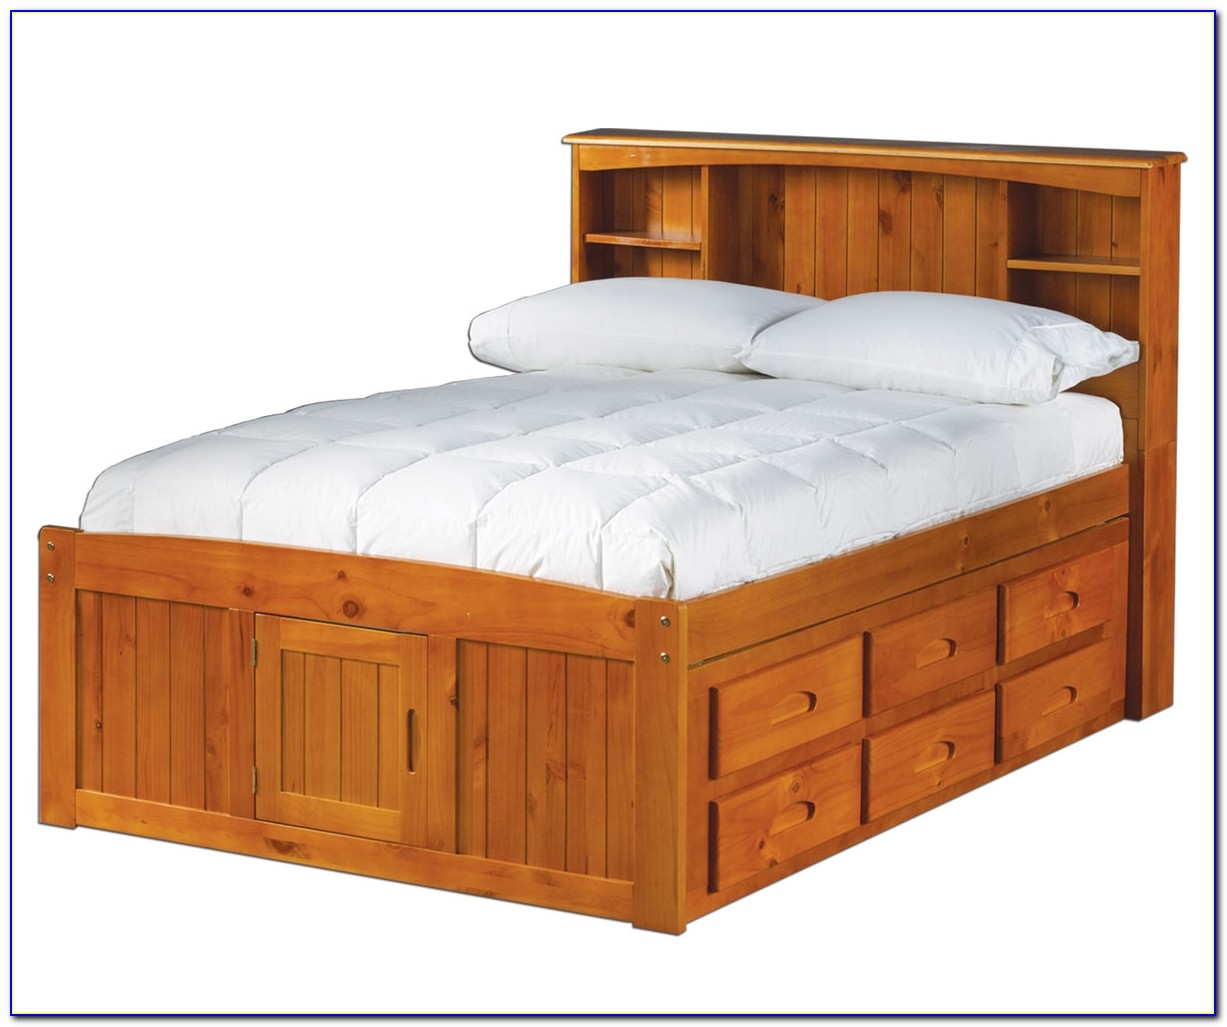 Full Size Bed Frame With Headboard And Footboard Attachments